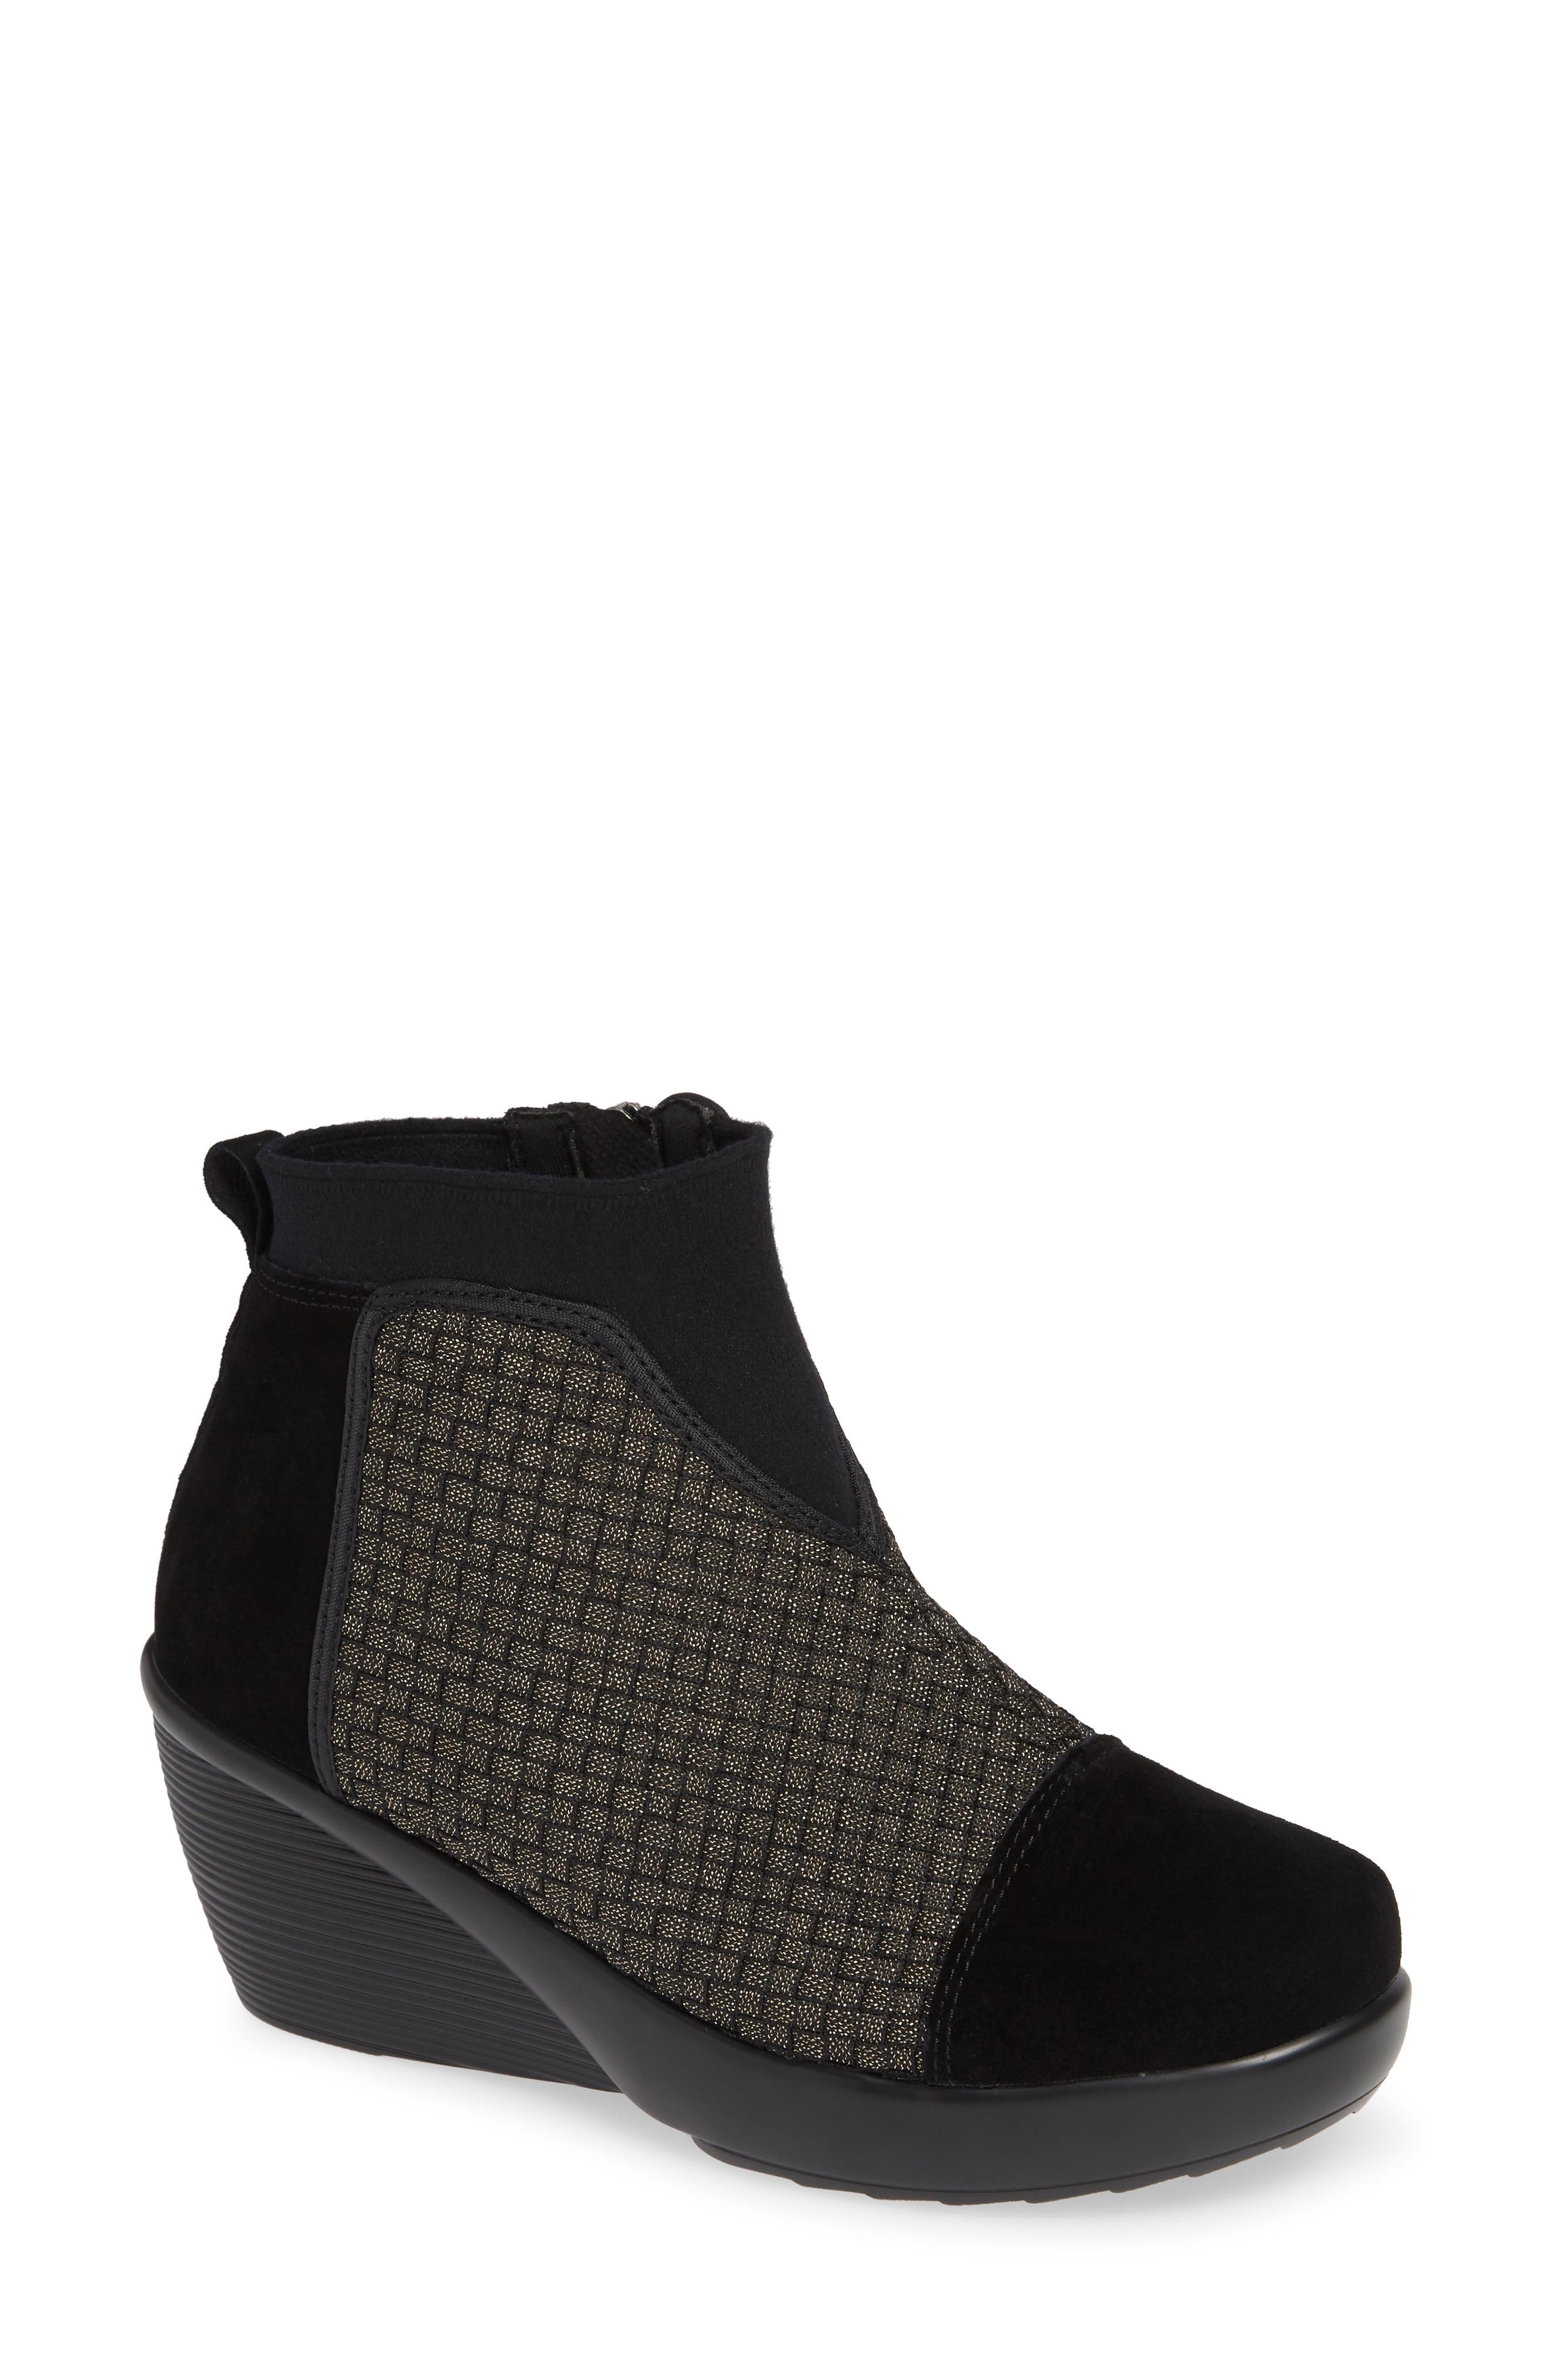 Zoe Wedge Bootie,                         Main,                         color, GOLD BLACK SHIMMER LEATHER